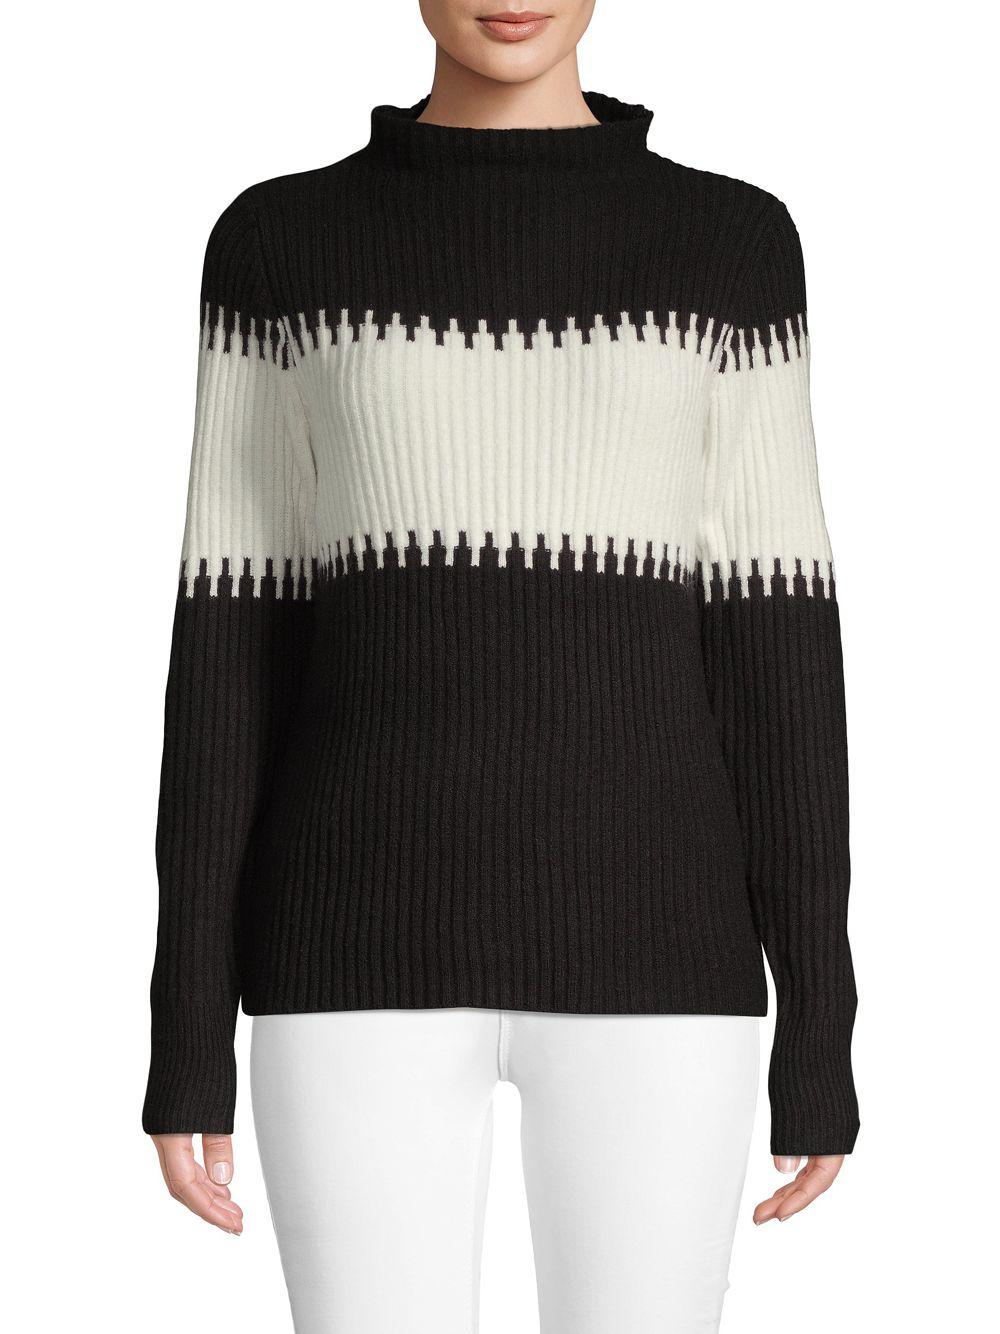 68eccb874998cd Lyst - French Connection Sophia Knits Ribbed Sweater in Black - Save 78%